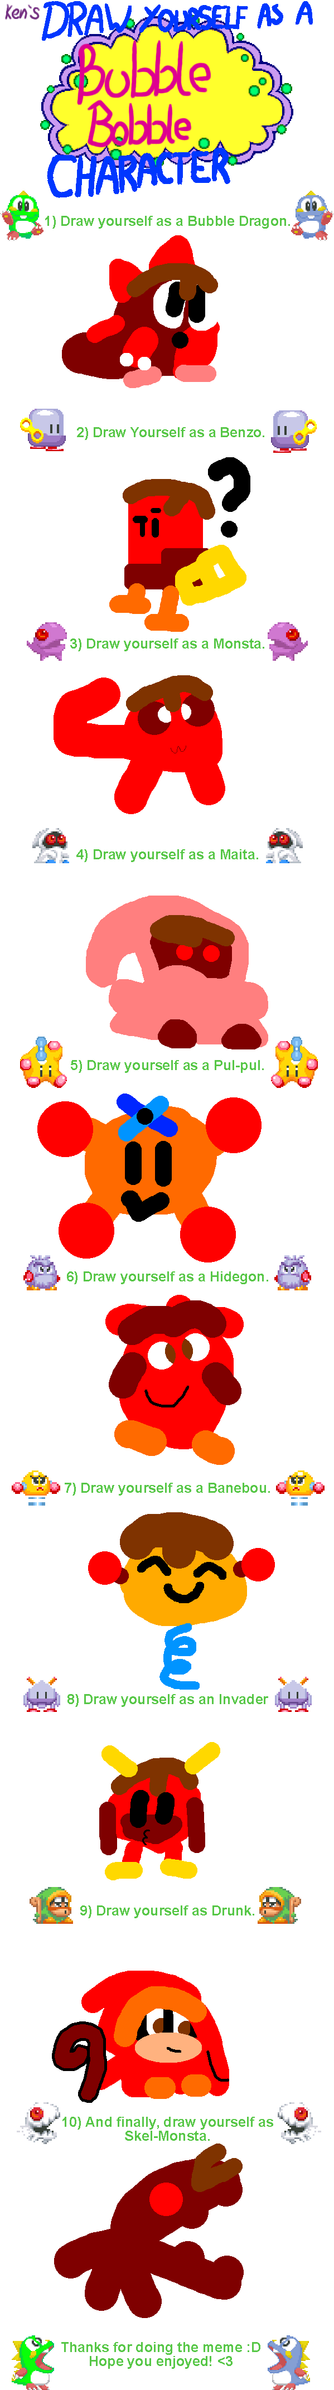 Draw Yourself in Bubble Bobble DONE by ThatBubblun52